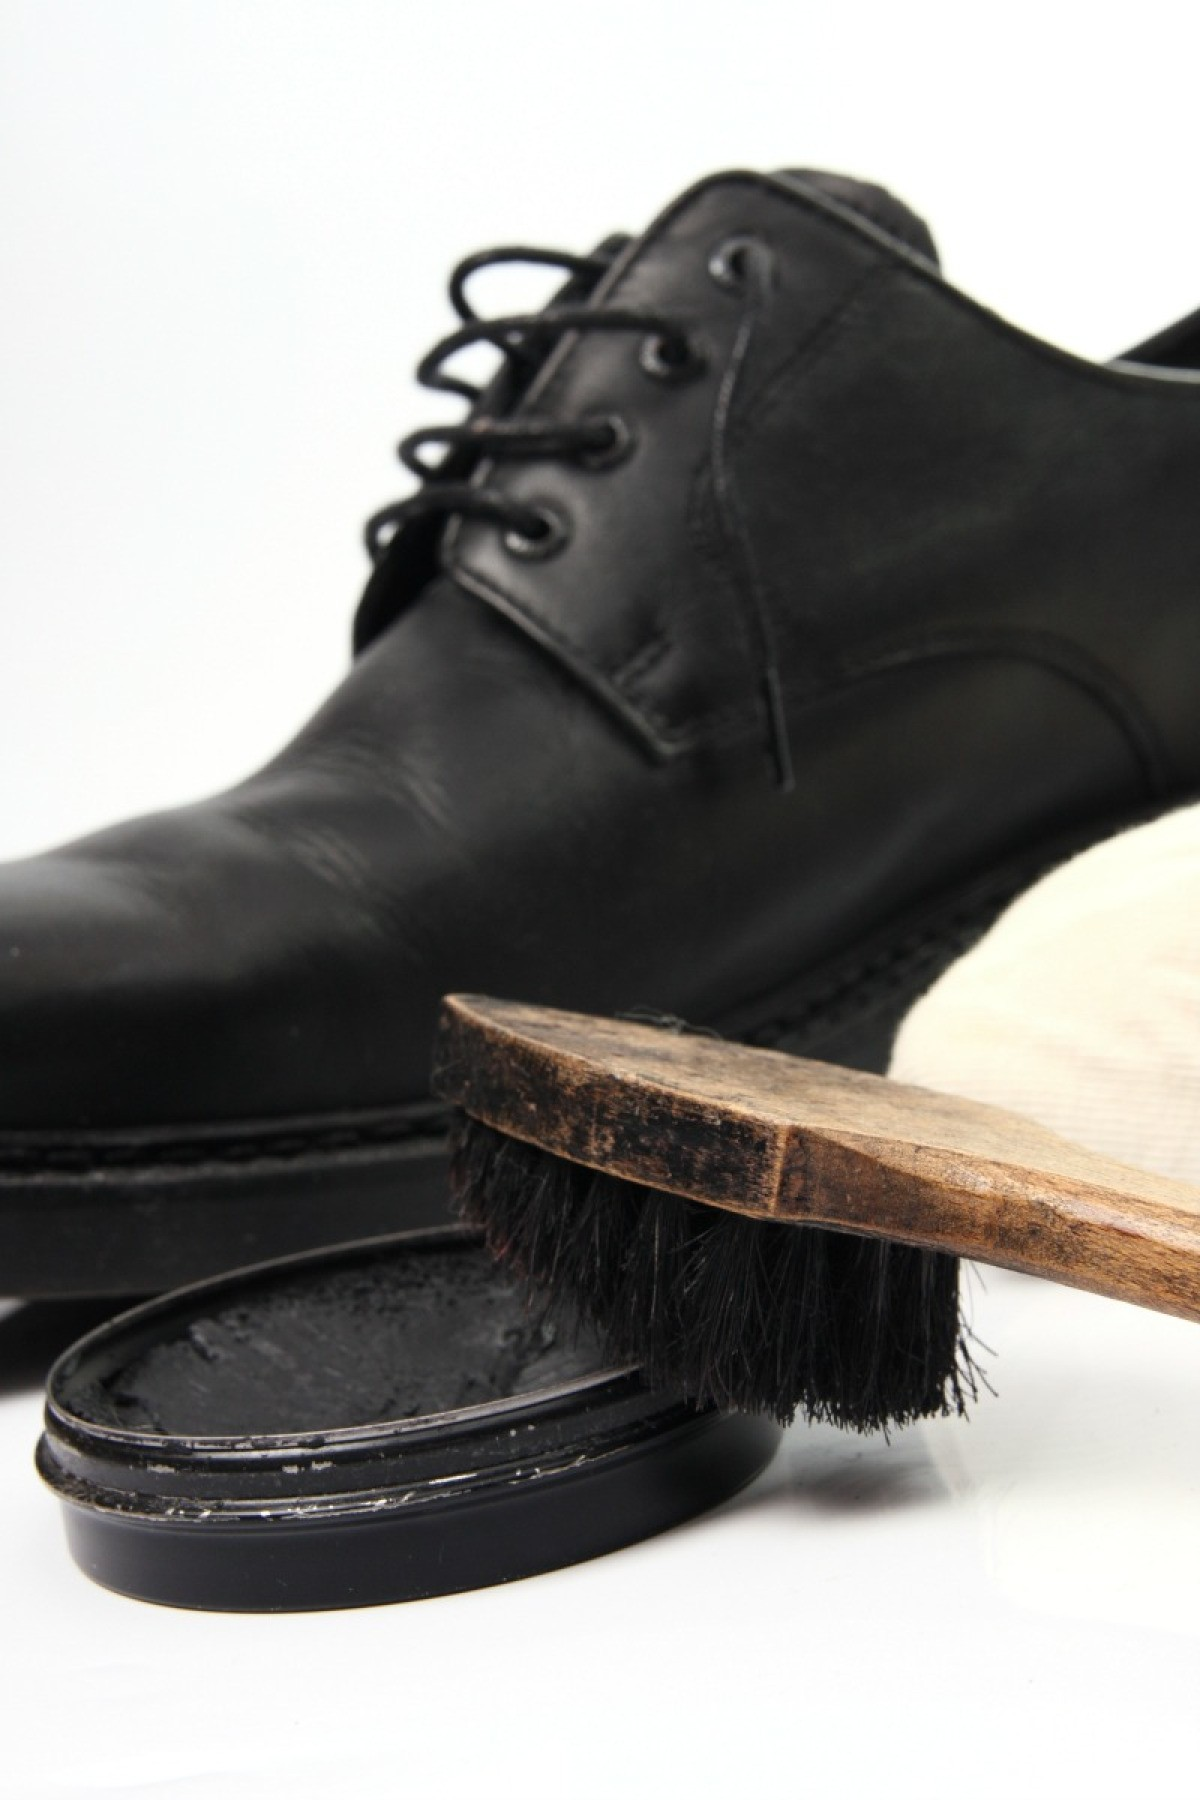 Cleaning Shoe Polish Stains On Clothing Thriftyfun